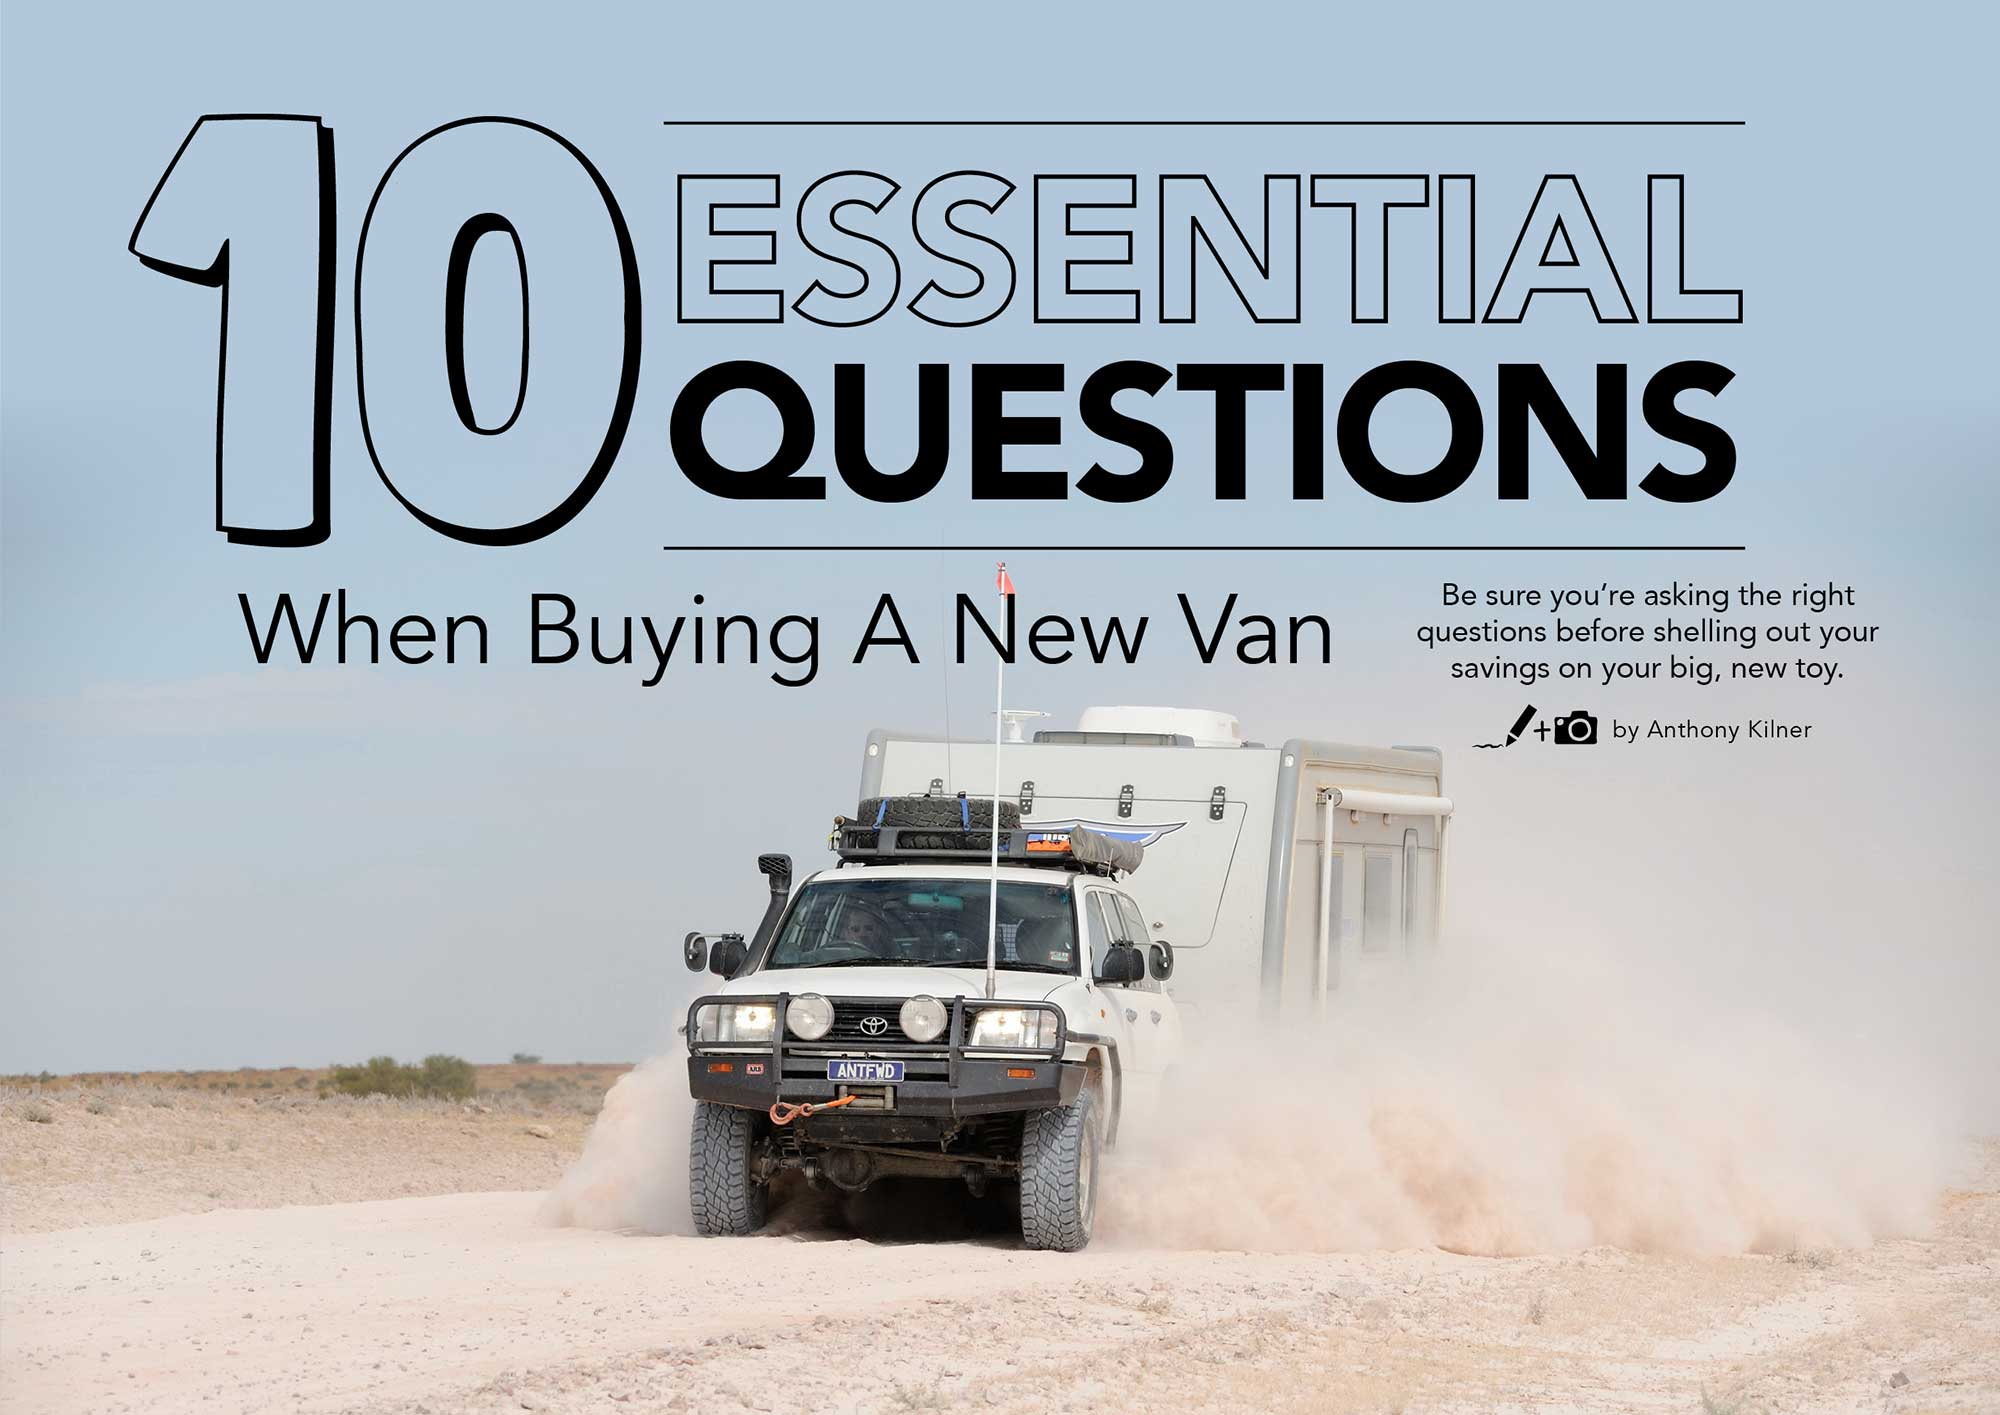 10 Essential Questions When Buying A New Van